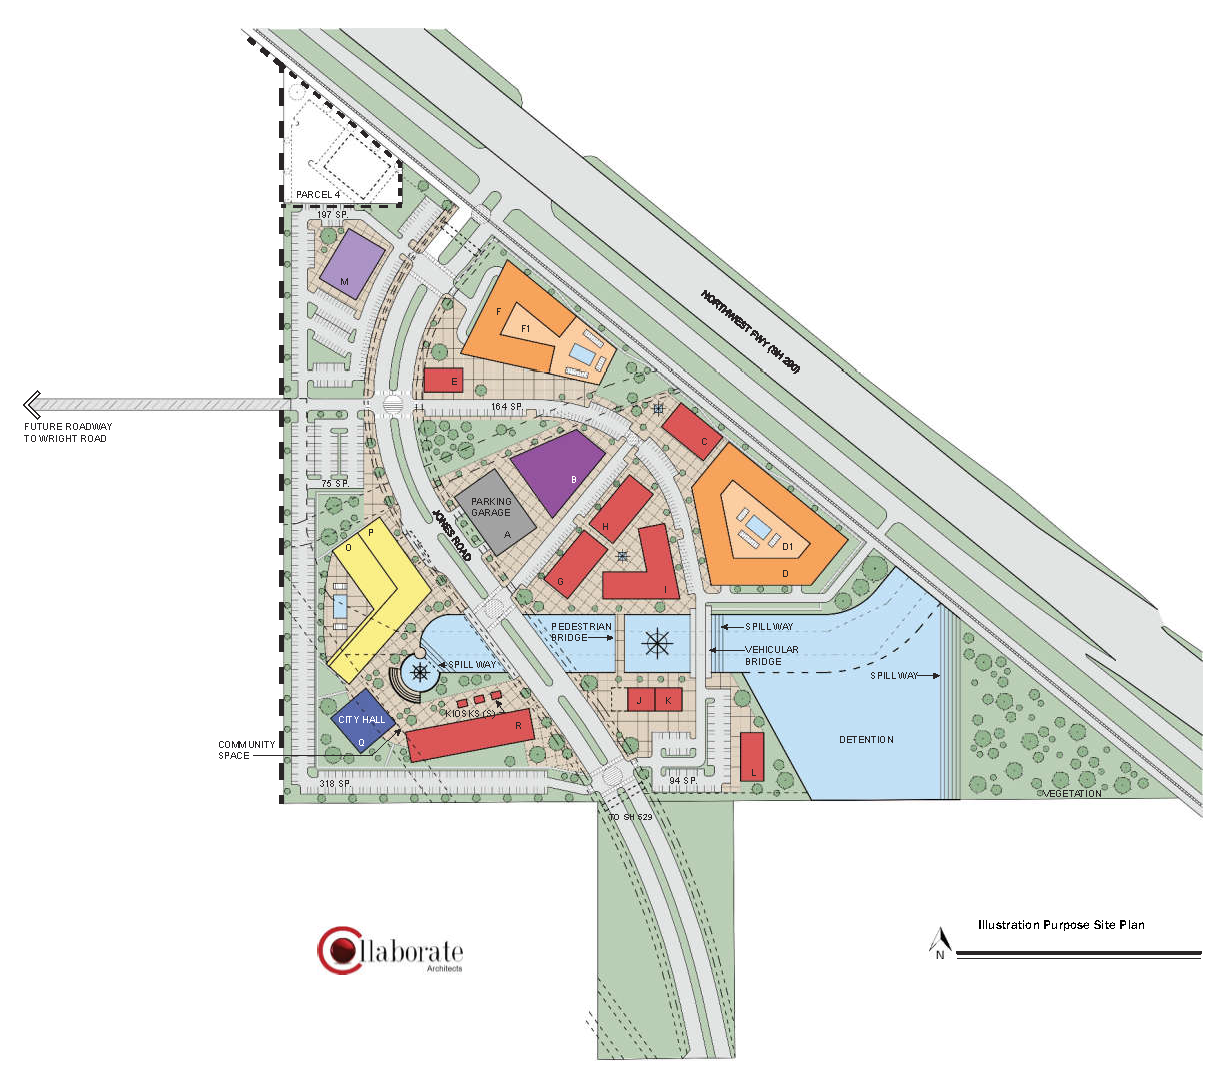 Village Center Site Map for illustration purposes